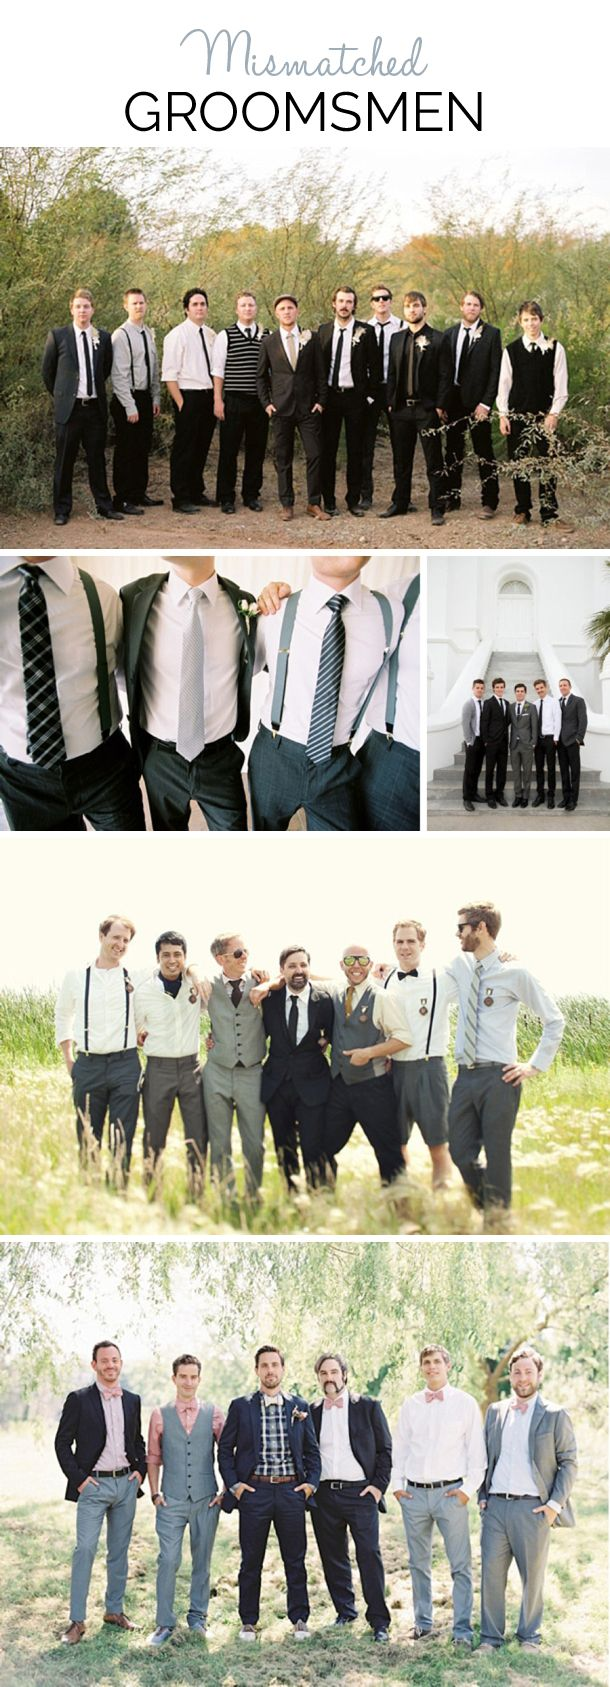 Mismatched Groomsmen | SouthBound Bride | http://www.southboundbride.com/mismatched-groomsmen | Credits:  Ben Christensen via Green Wedding Shoes // Jose Villa via Green Wedding Shoes // Kate Osborne via Snippet & Ink // kamp photography via LaBelle Bride // Jessica Lorren via Once Wed